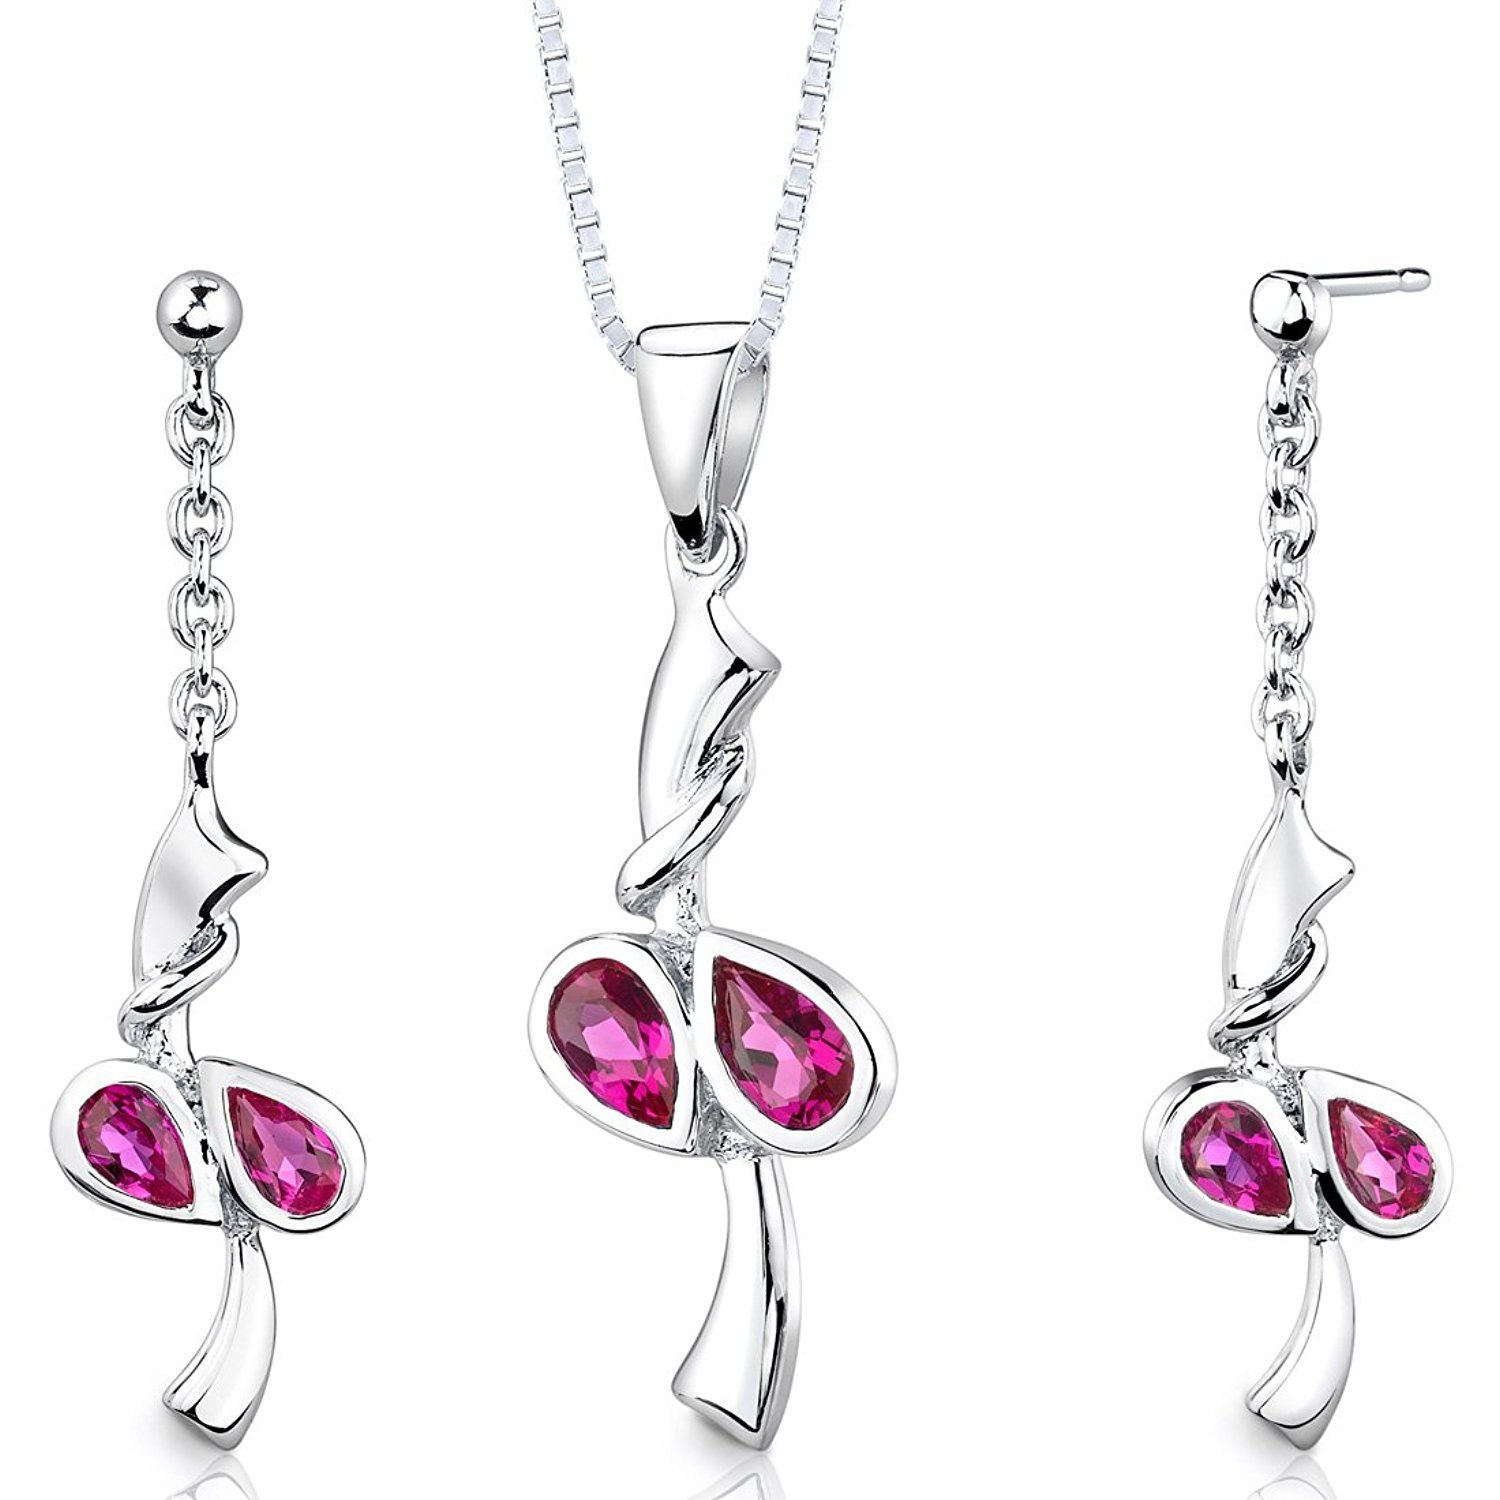 Sterling silver rhodium nickel finish pear shape created ruby